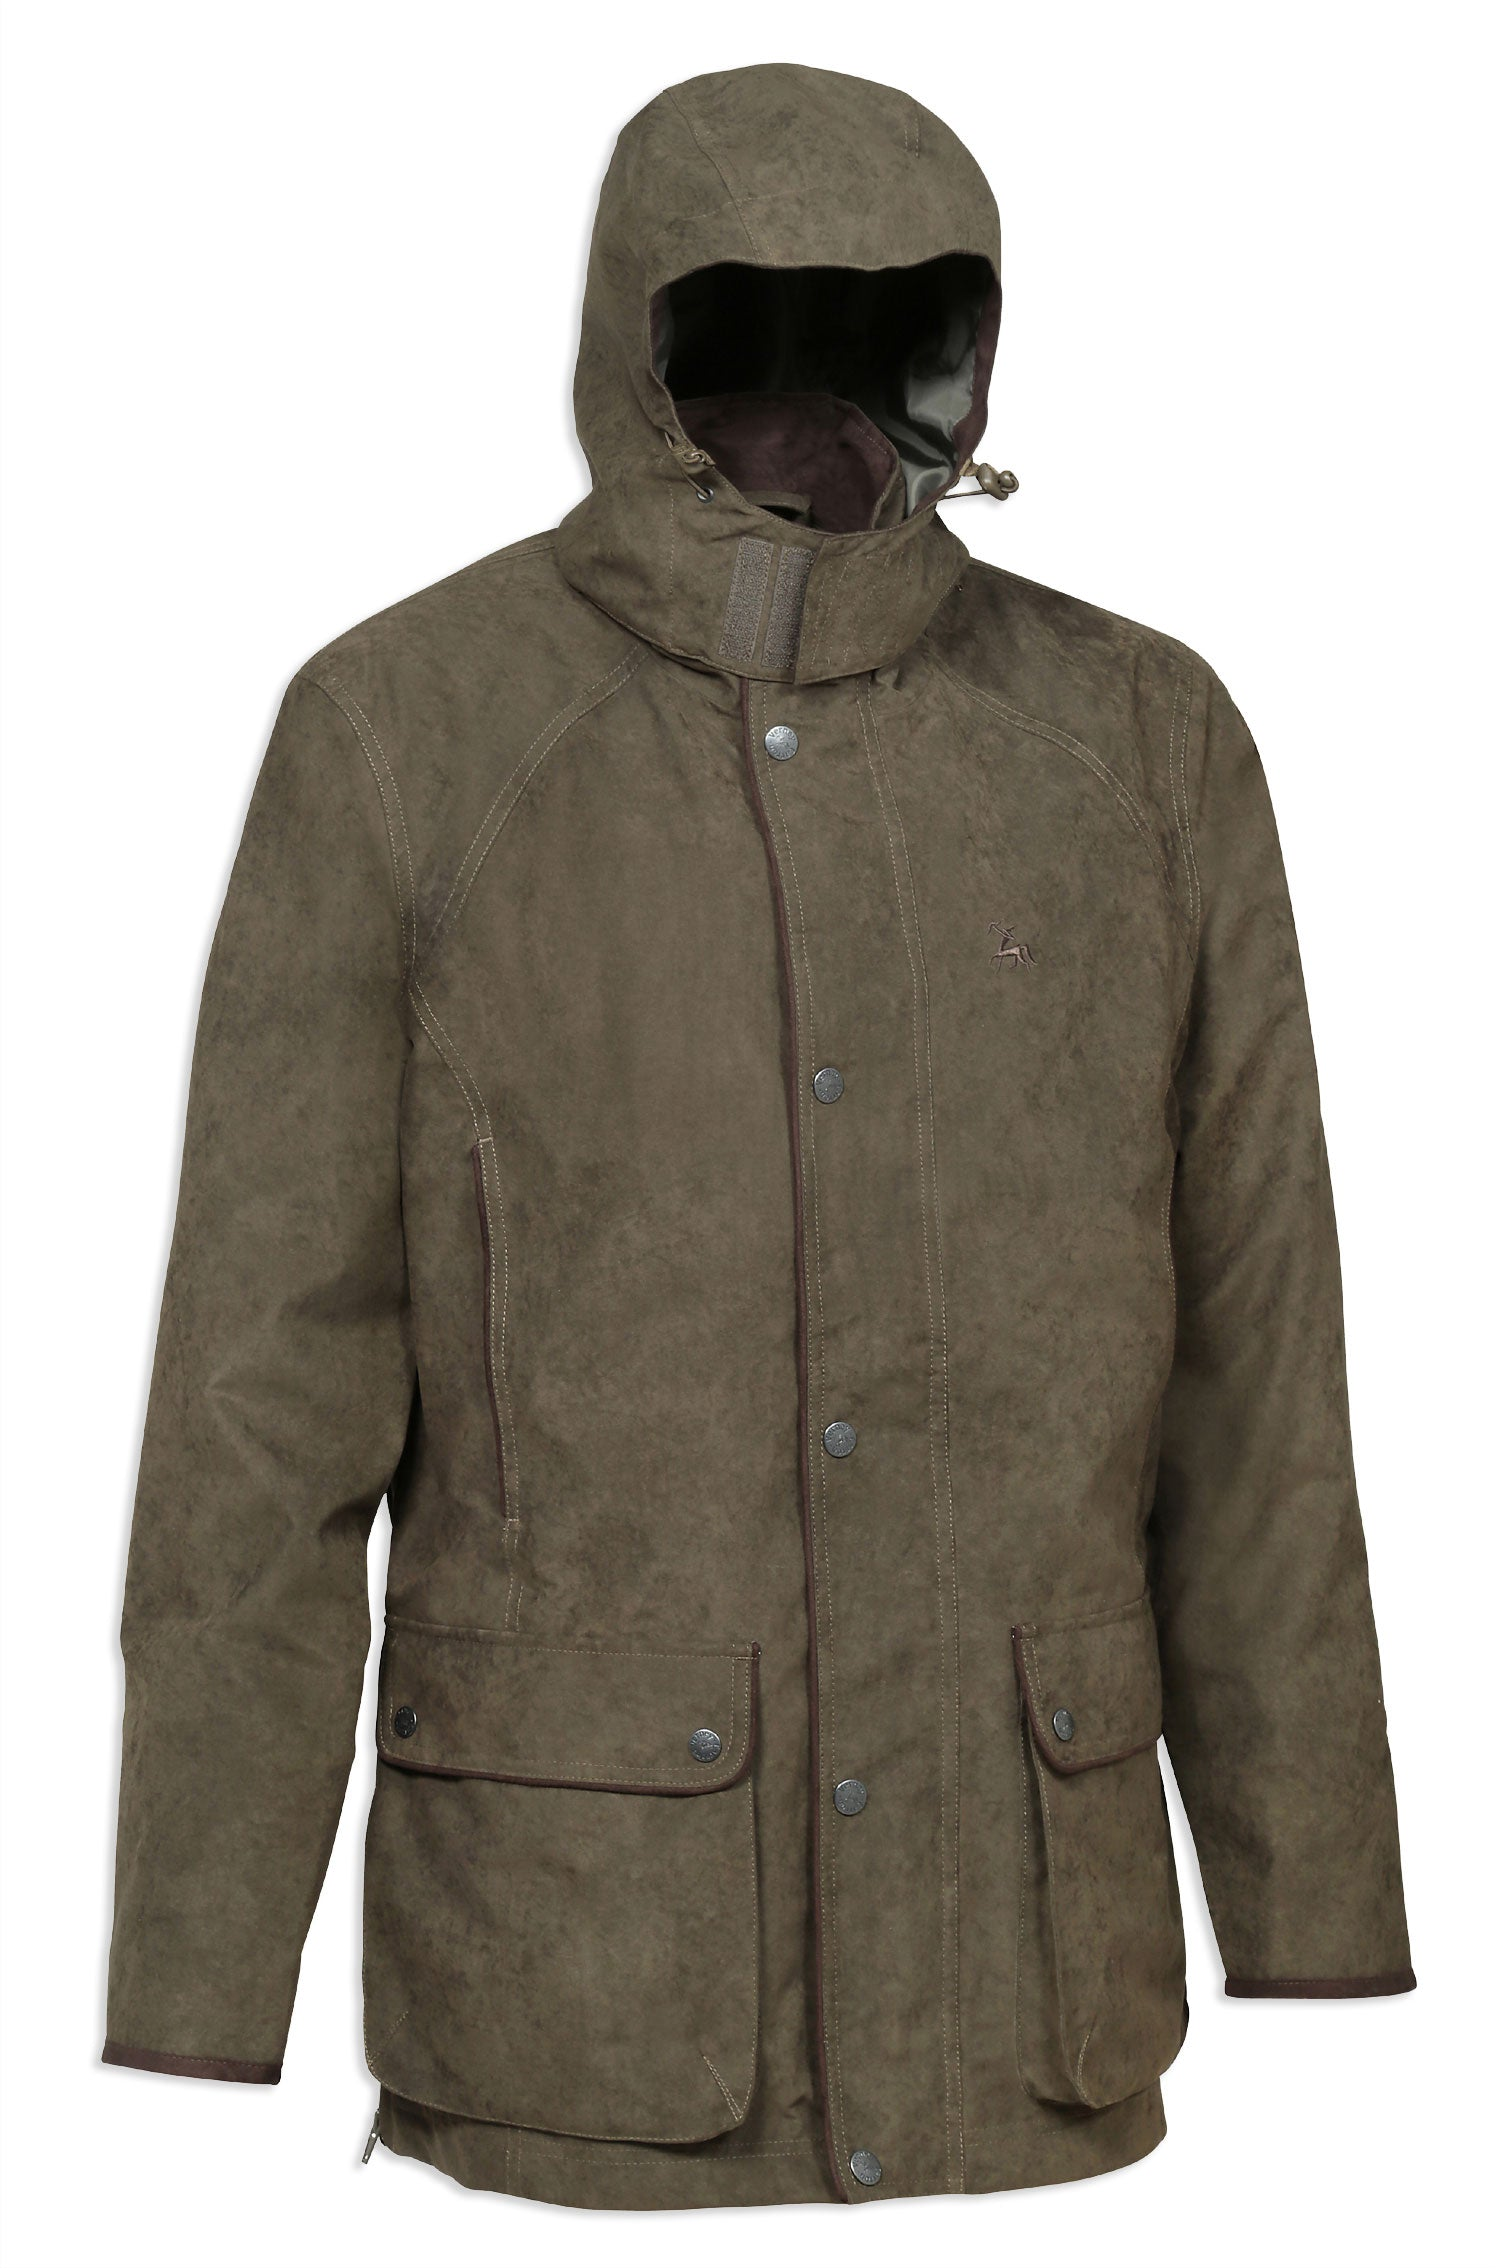 Verney Carron Perdrix Shooting Jacket – Hollands Country Clothing